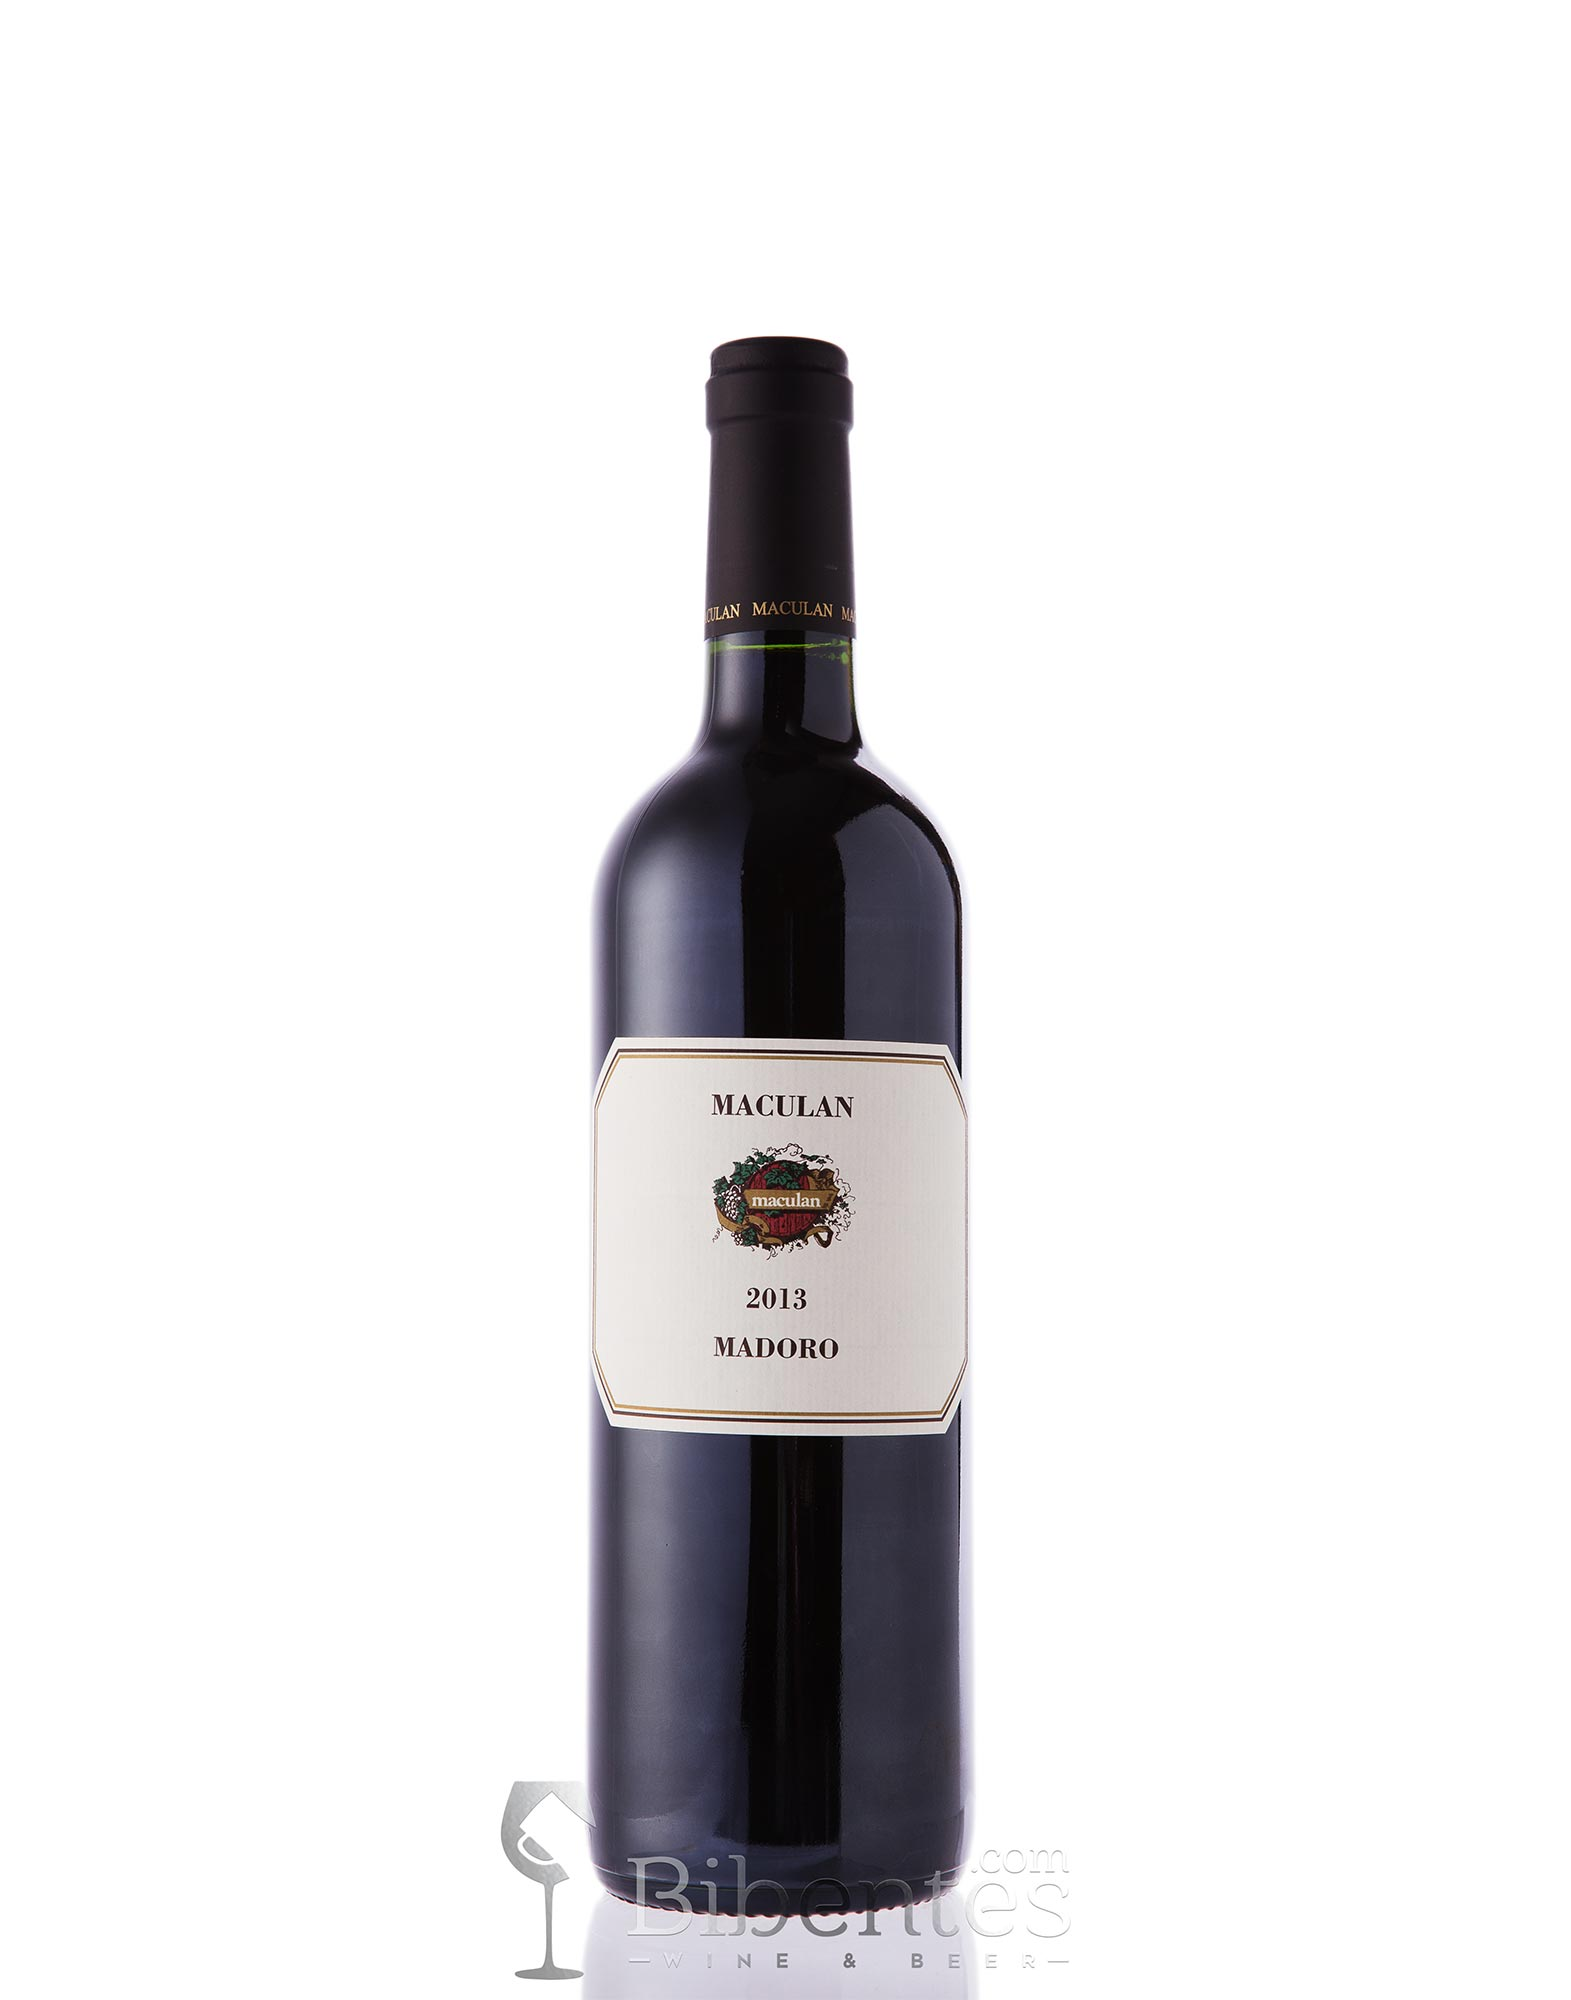 lllMadoro Rosso Passito MACULAN 2013